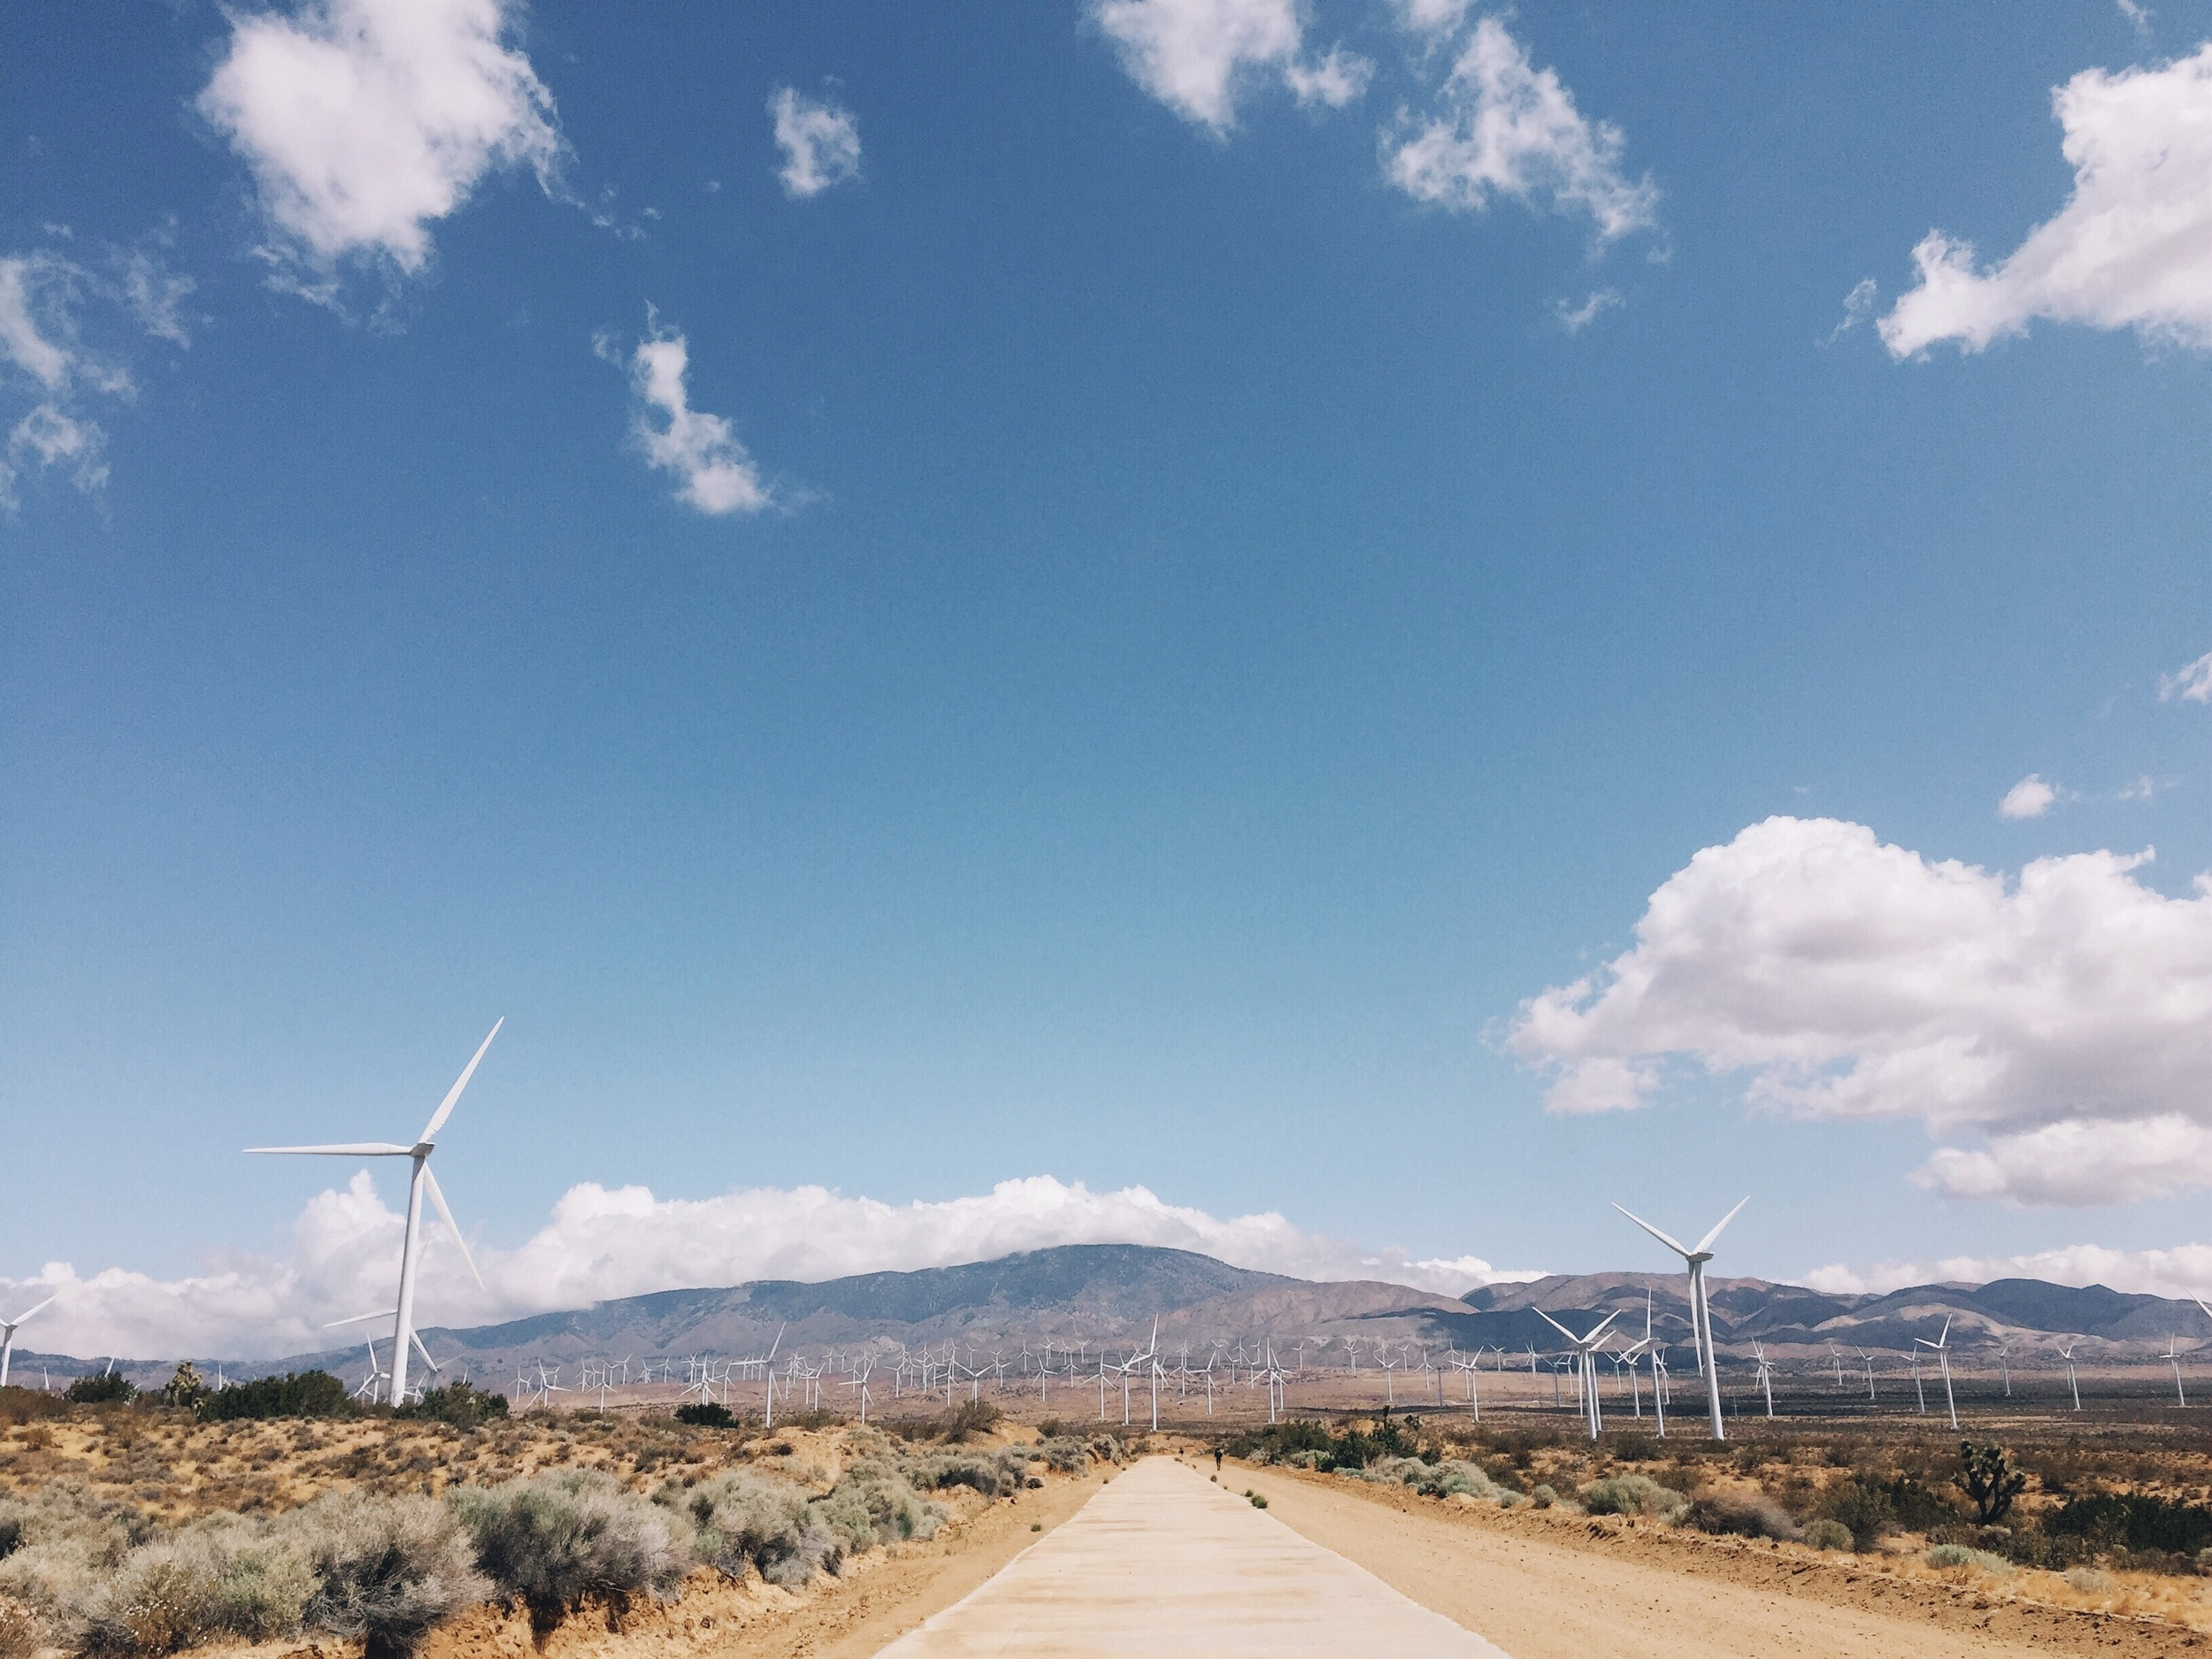 Entering the wind farm.